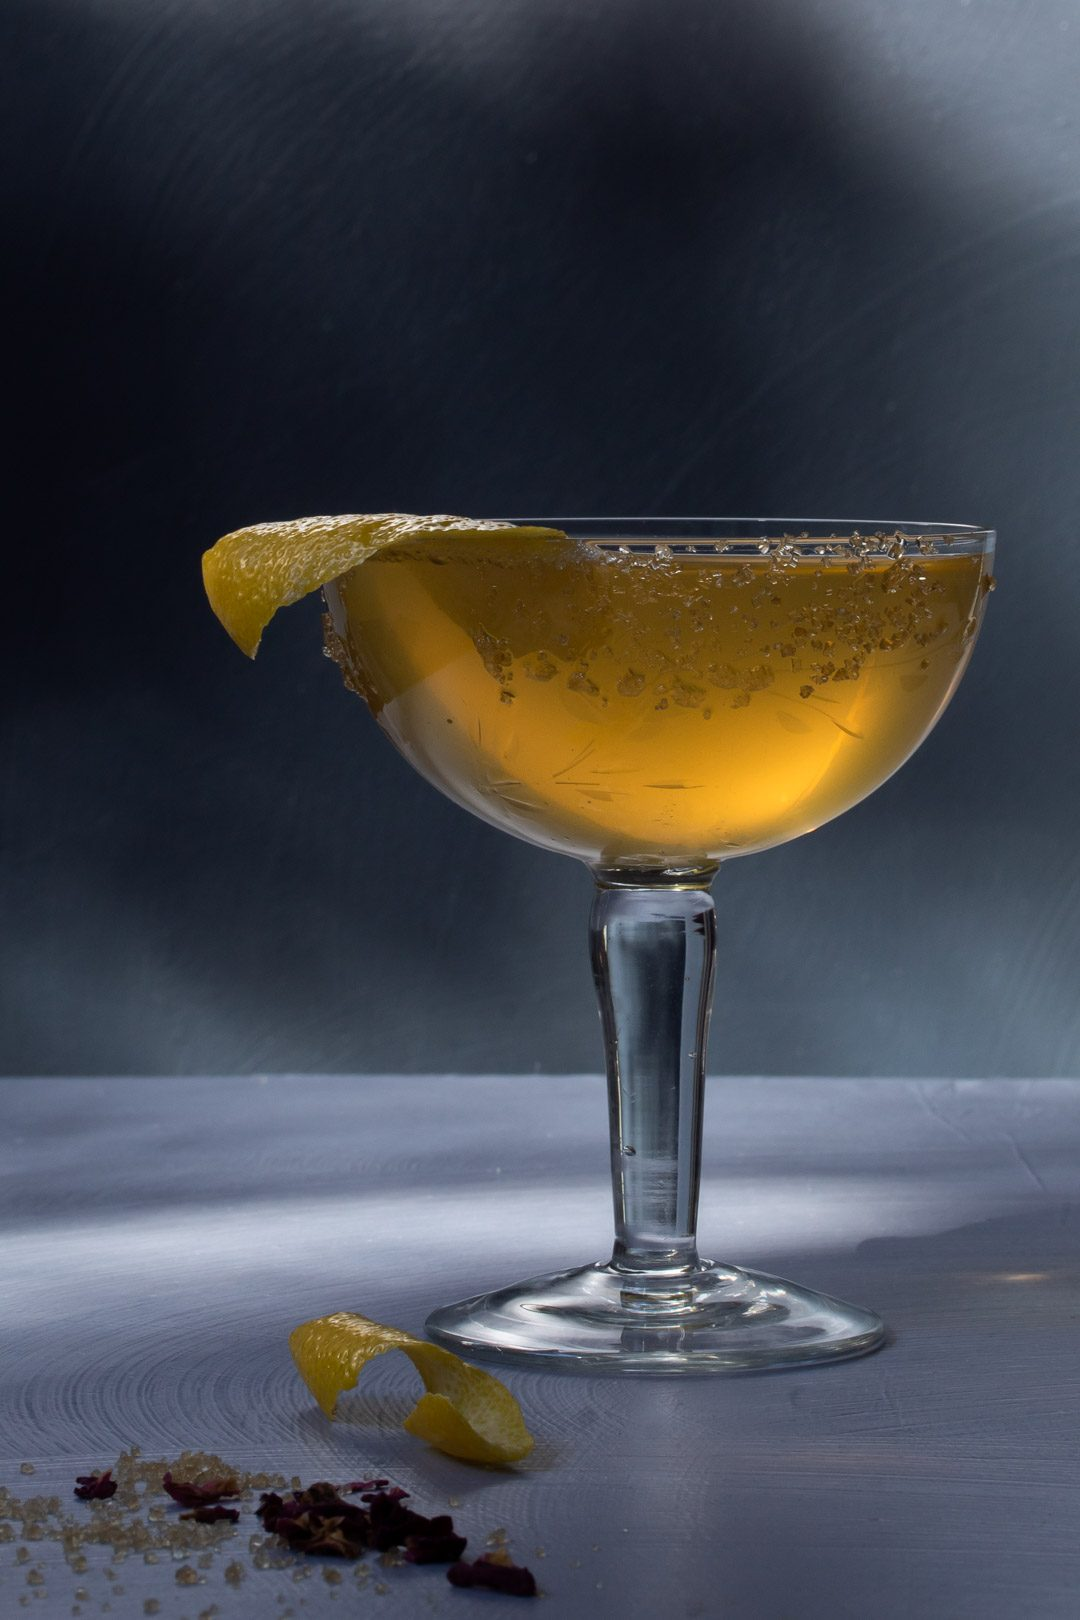 Fancy quince brandy champagne cocktail with light and shadows